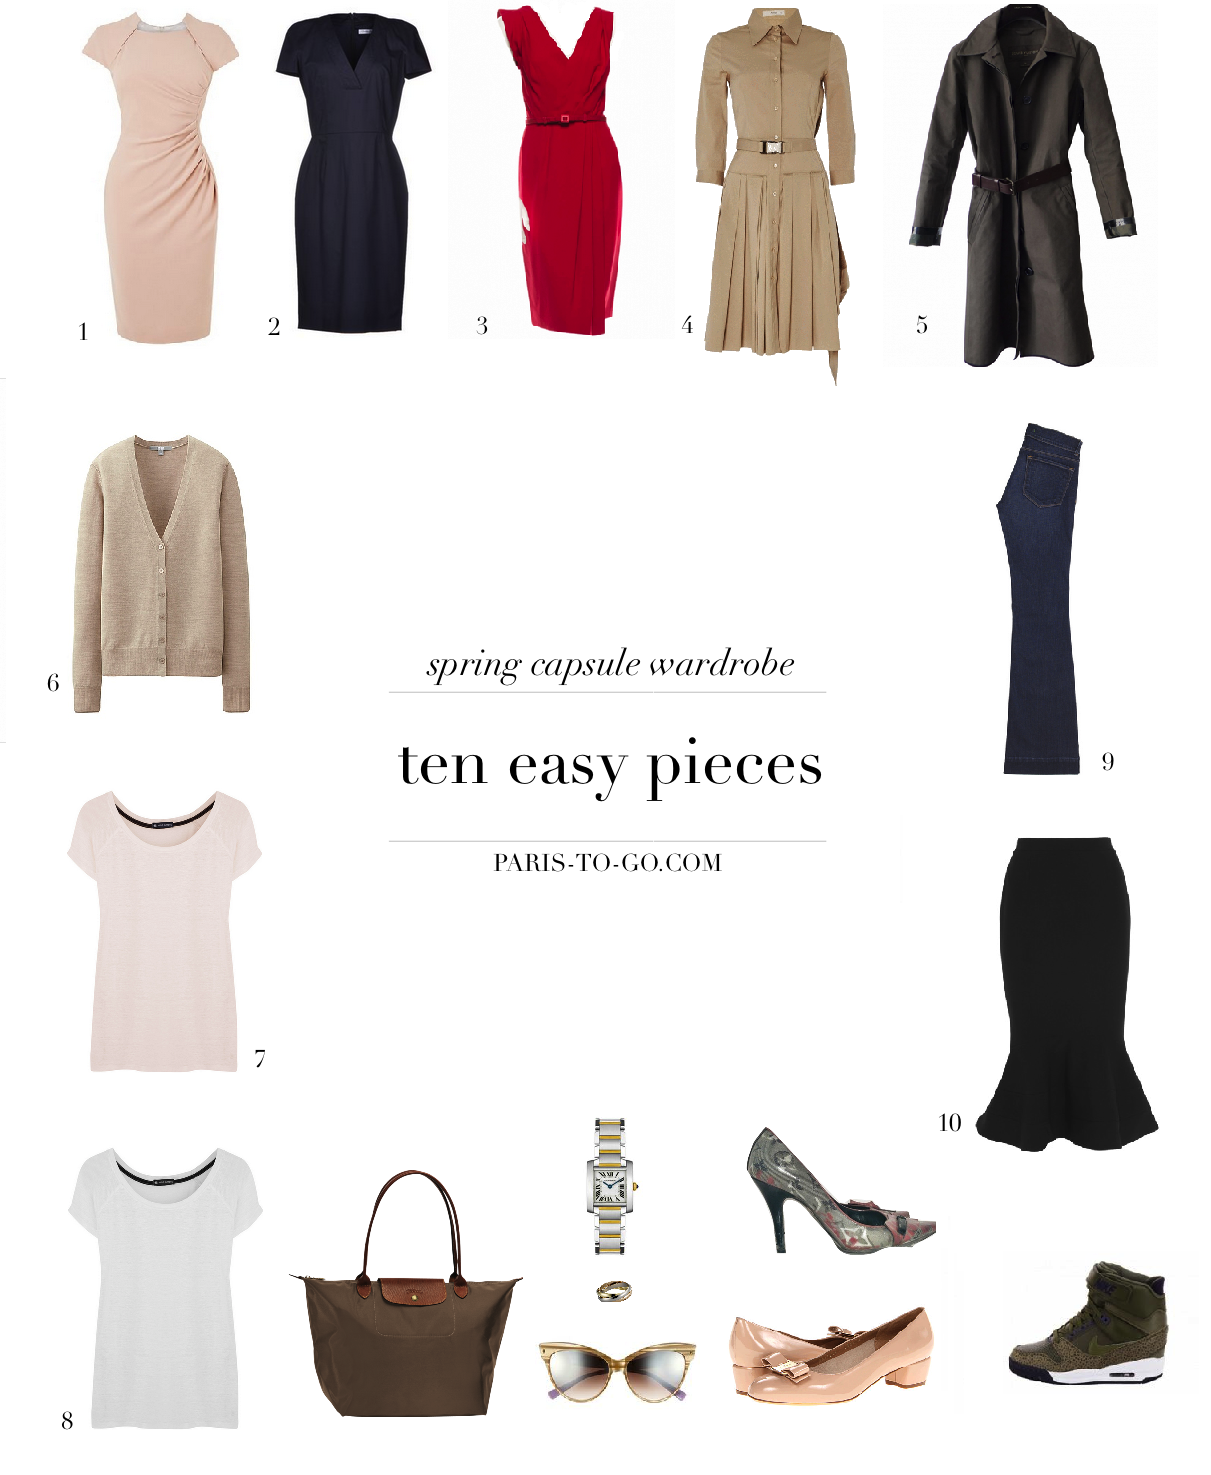 10 Piece French Wardrobe Capsule